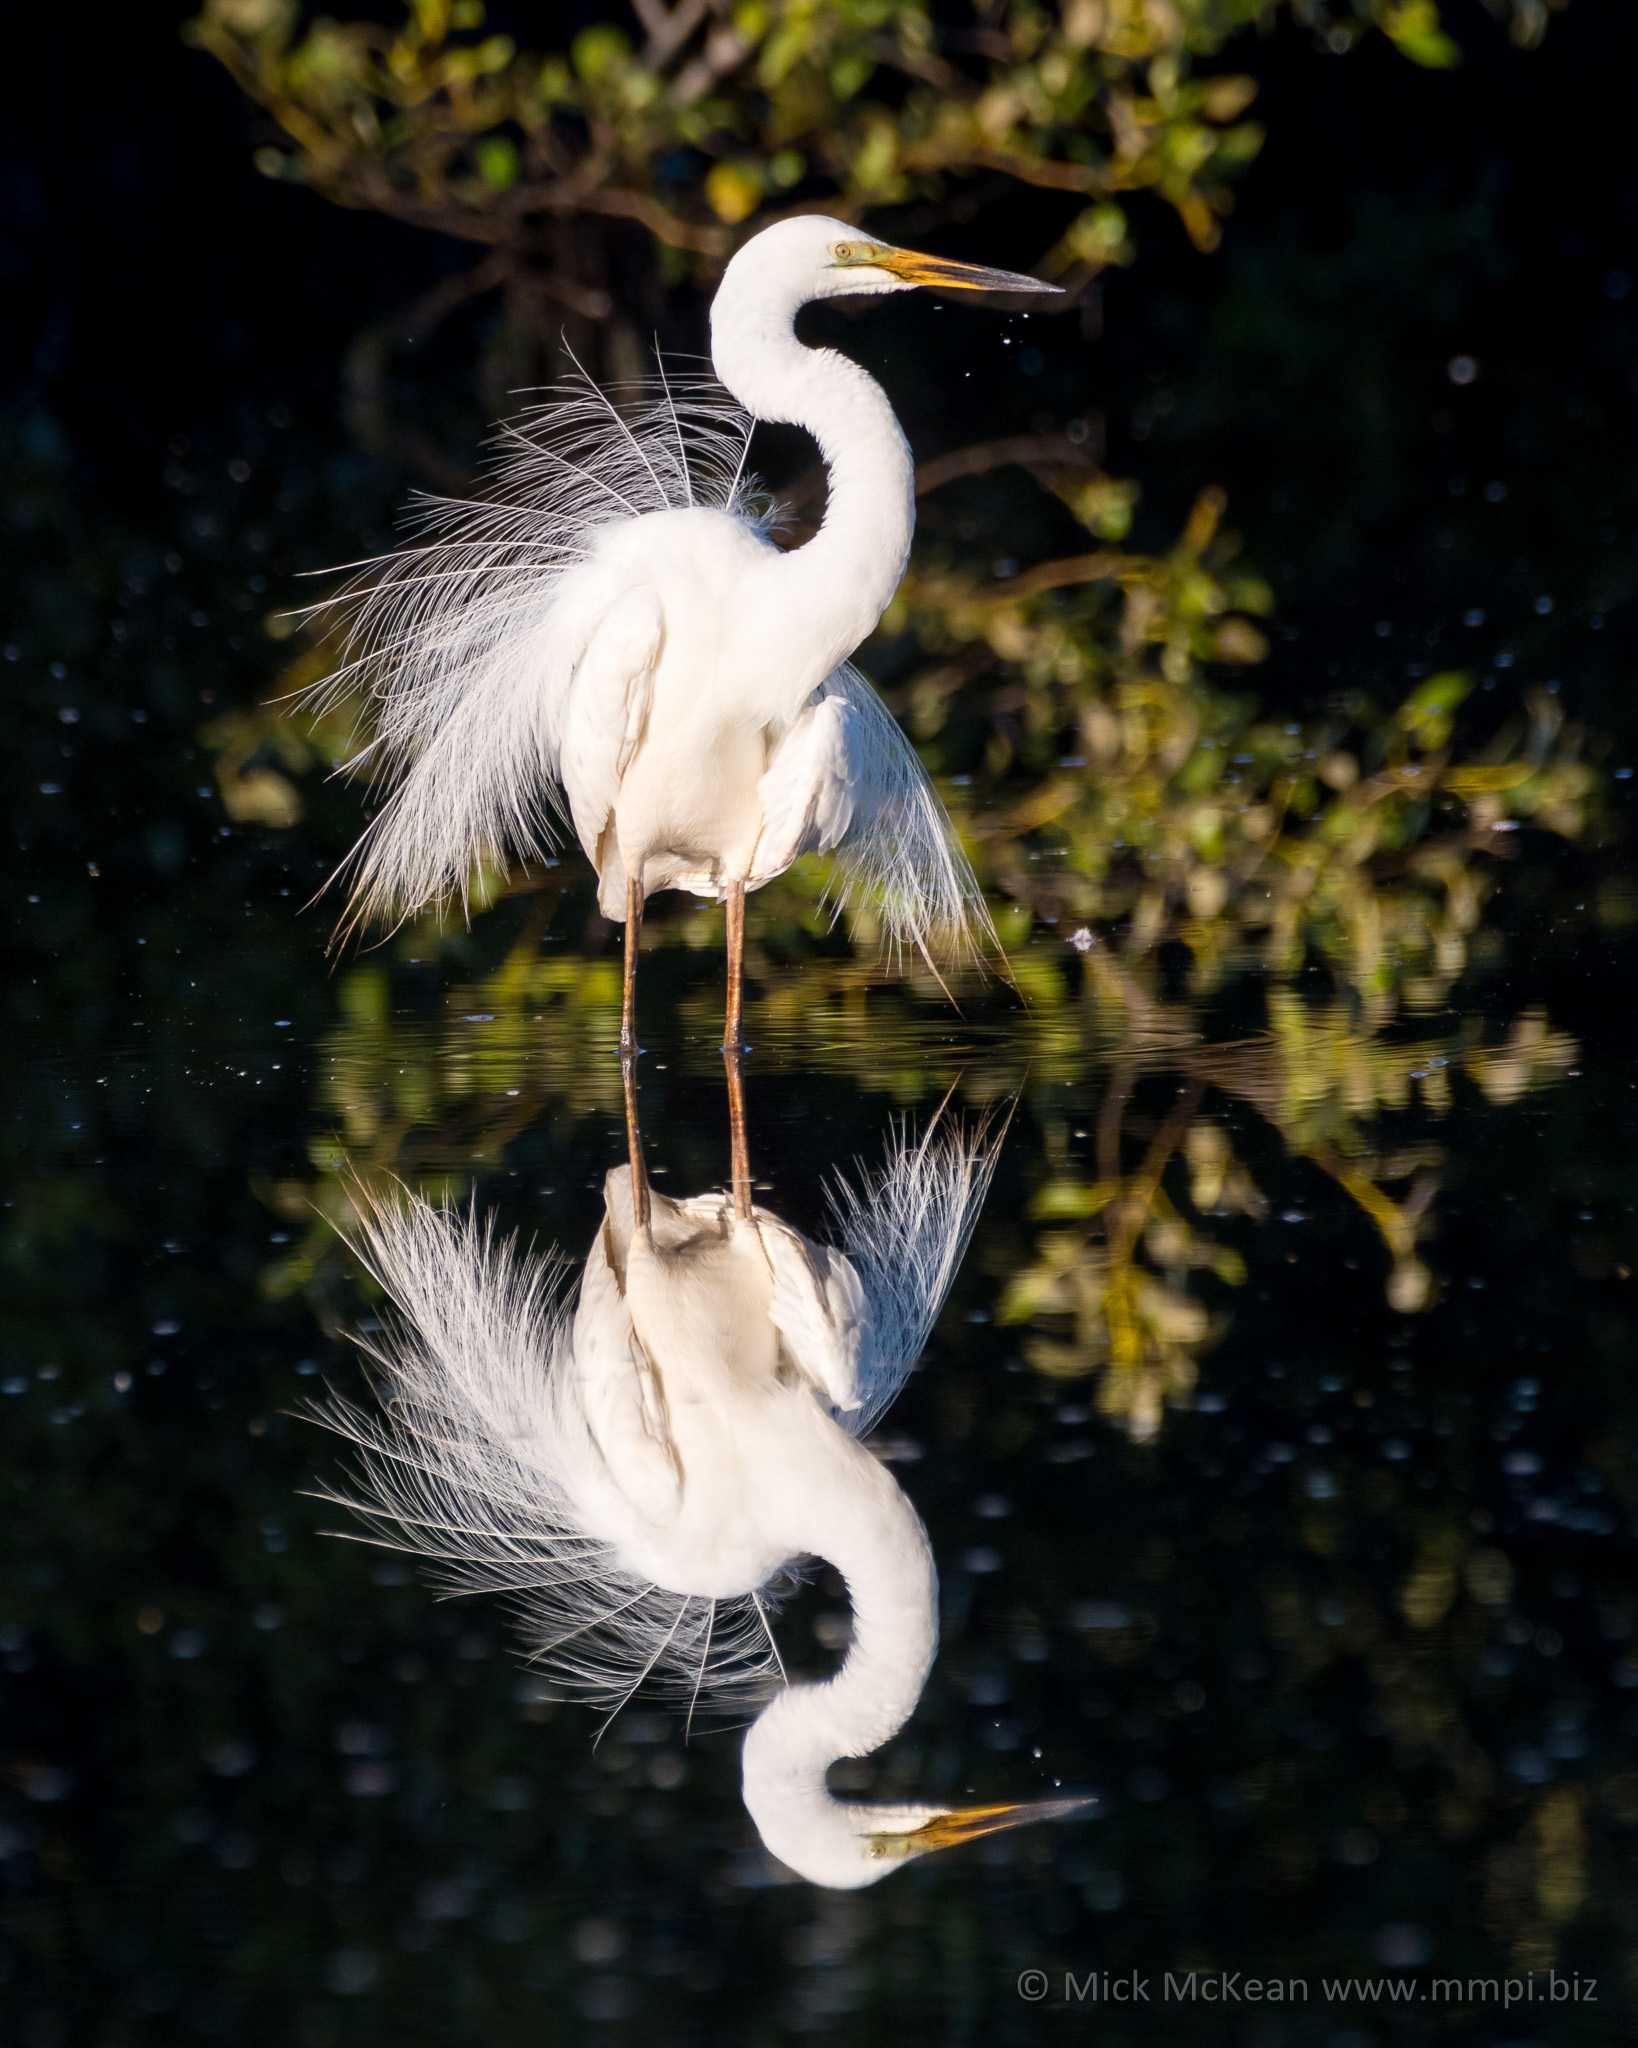 Great Egret Plumage and Reflection